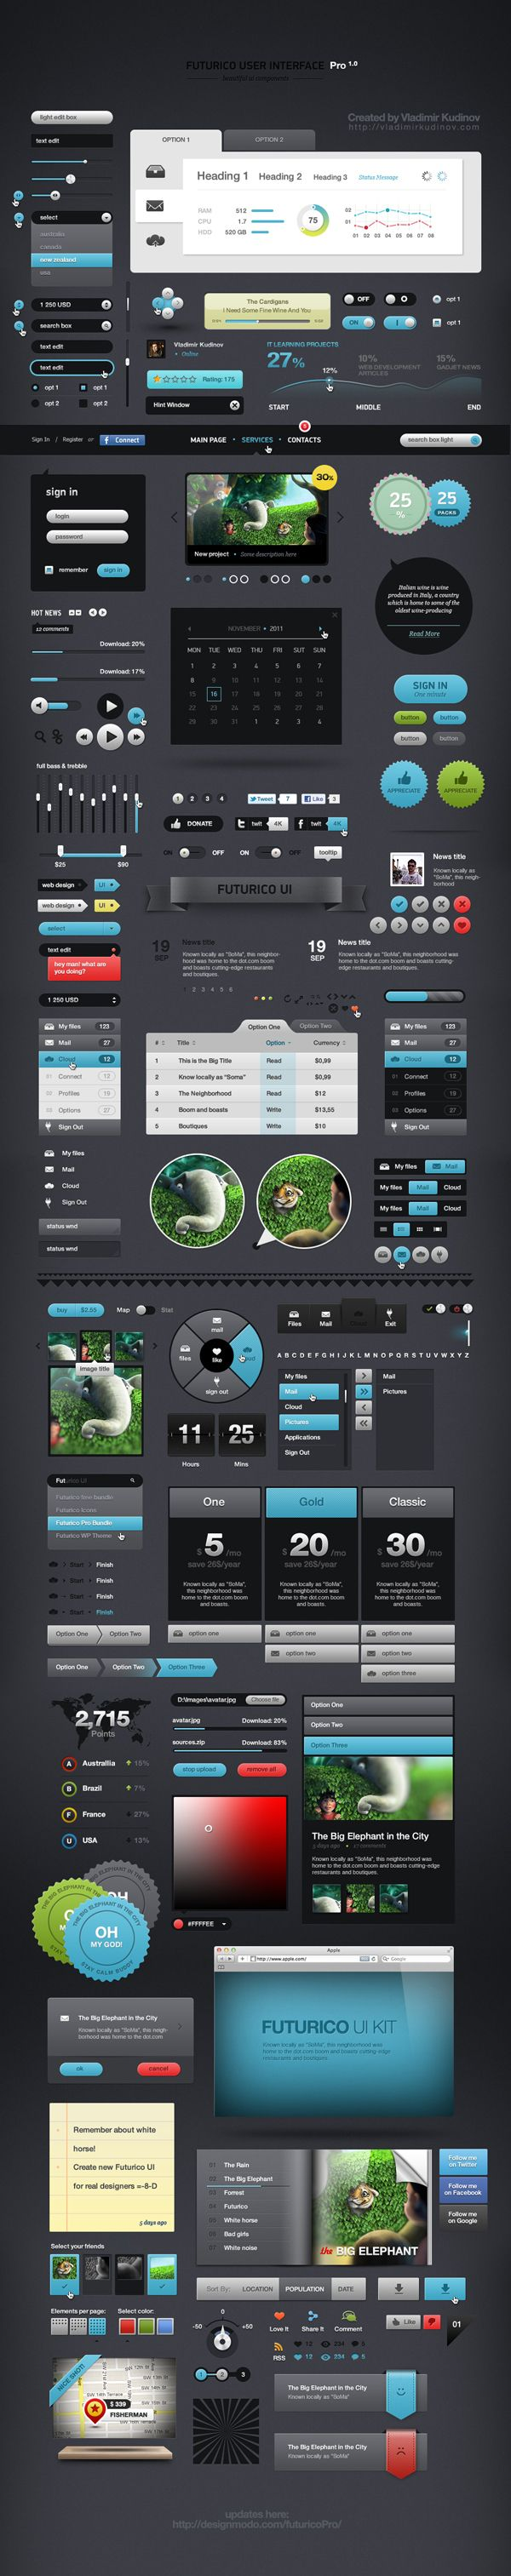 Futurico User Interface Pro by Vladimir Kudinov, via Behance  #ui #app #web